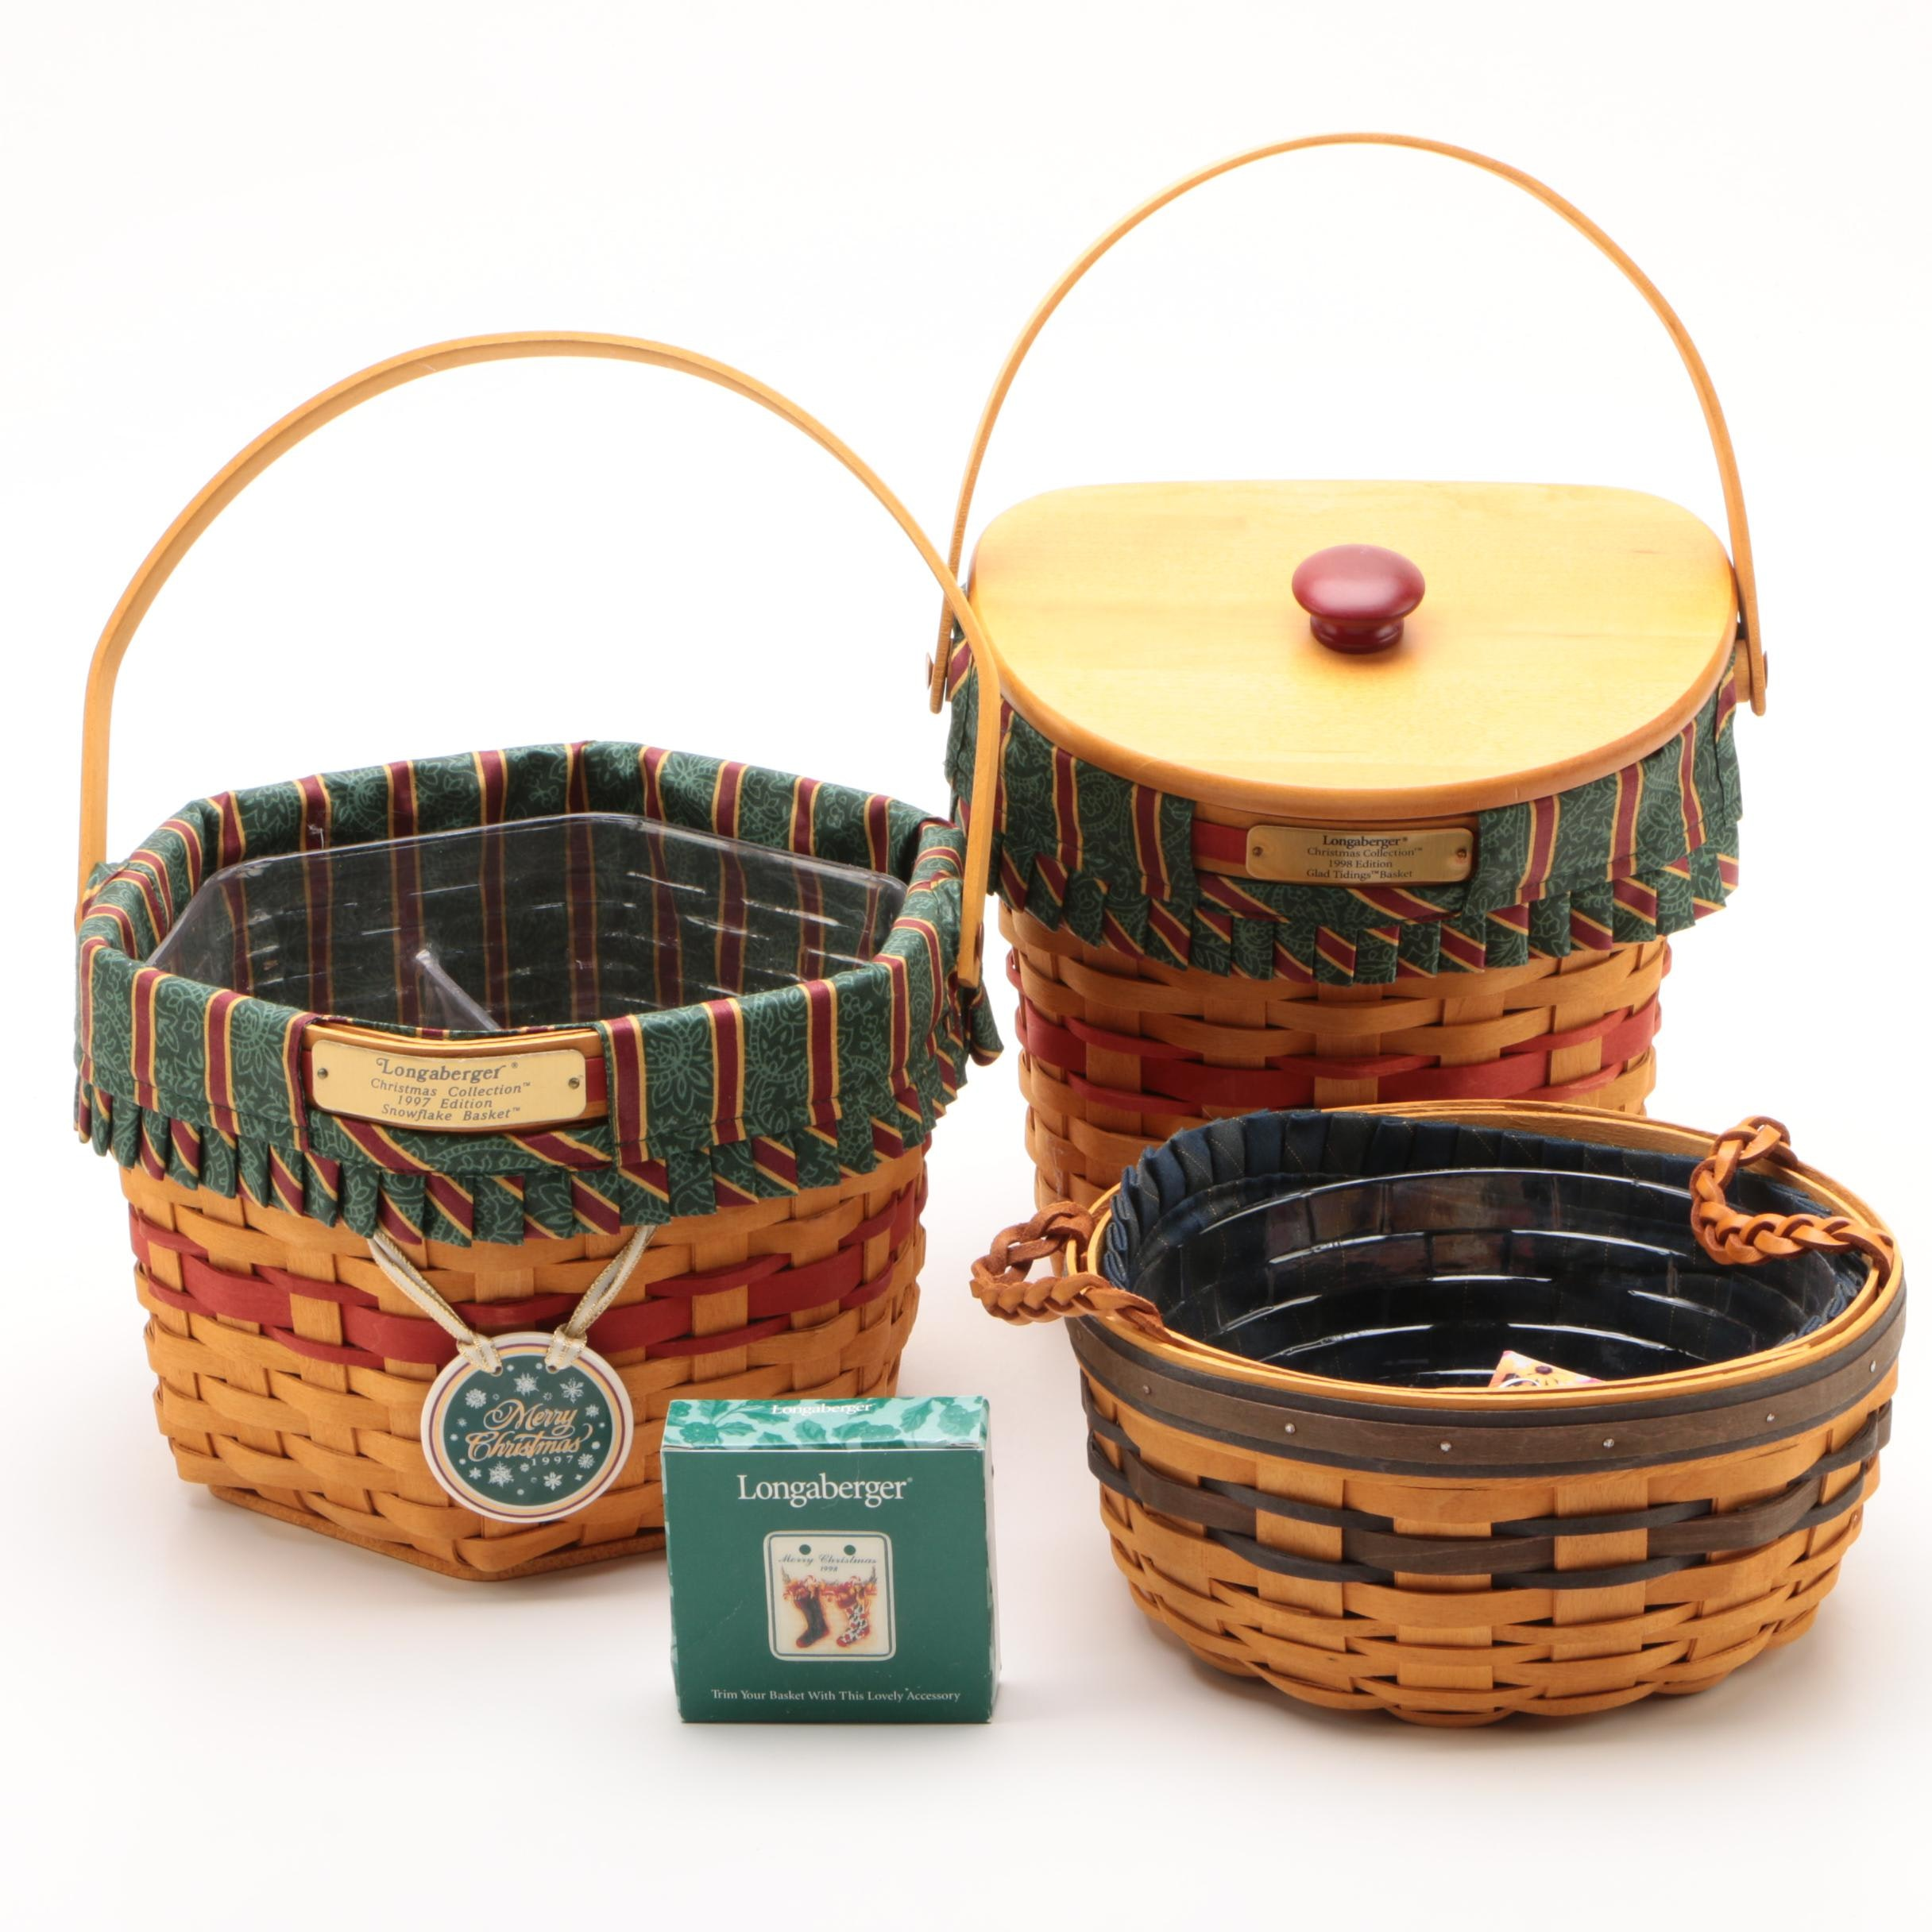 """Longaberger """"Christmas Collection"""" Baskets with Tie-On and Renewal Basket, 1990s"""